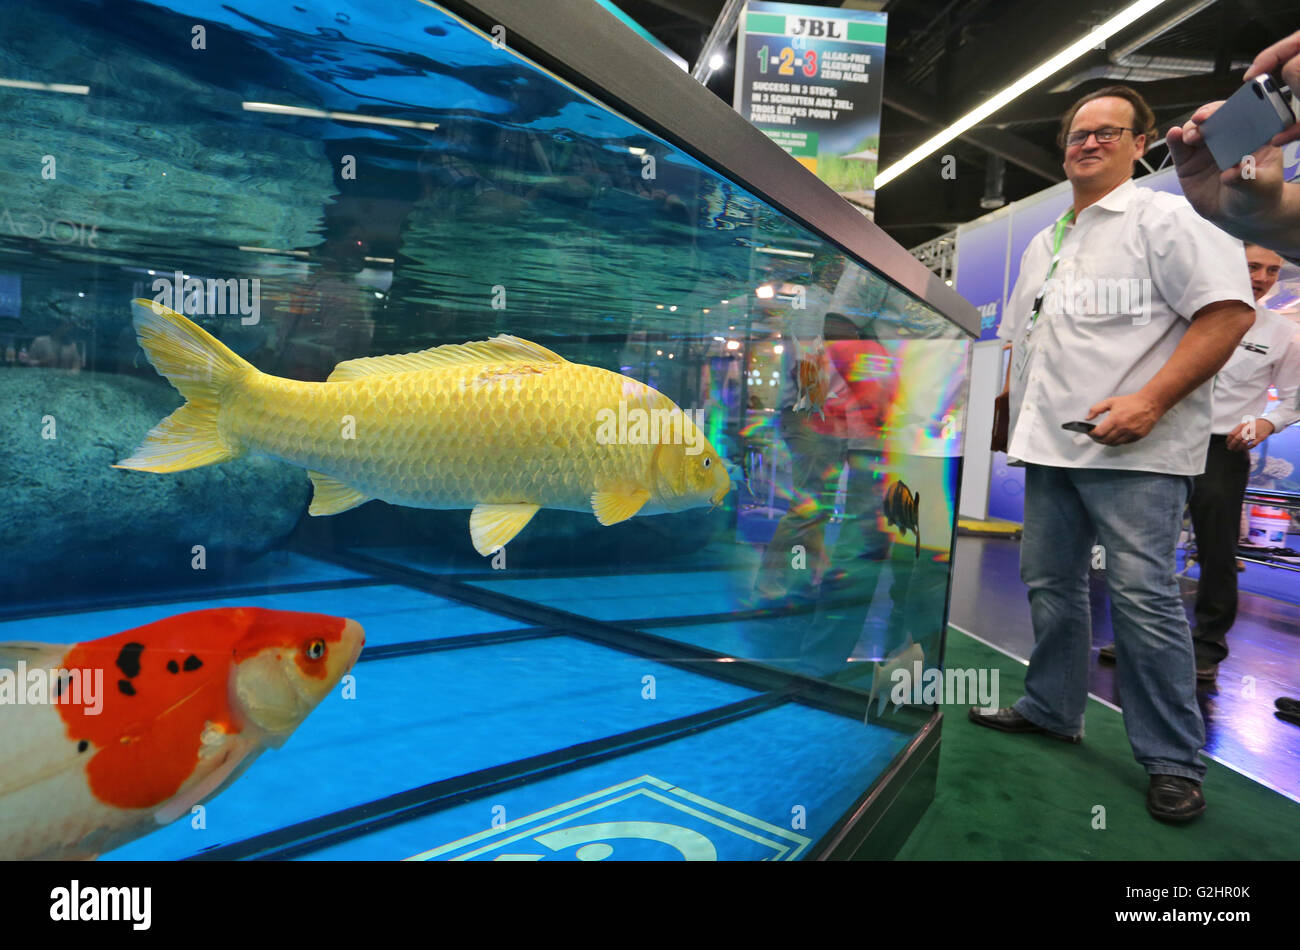 Koi Carps Swim In A Large Fish Tank At The Trade Fair Interzoo Nuernberg Germany 26 May 2016 Around 1800 Exhibitors From More Than 60 Countries